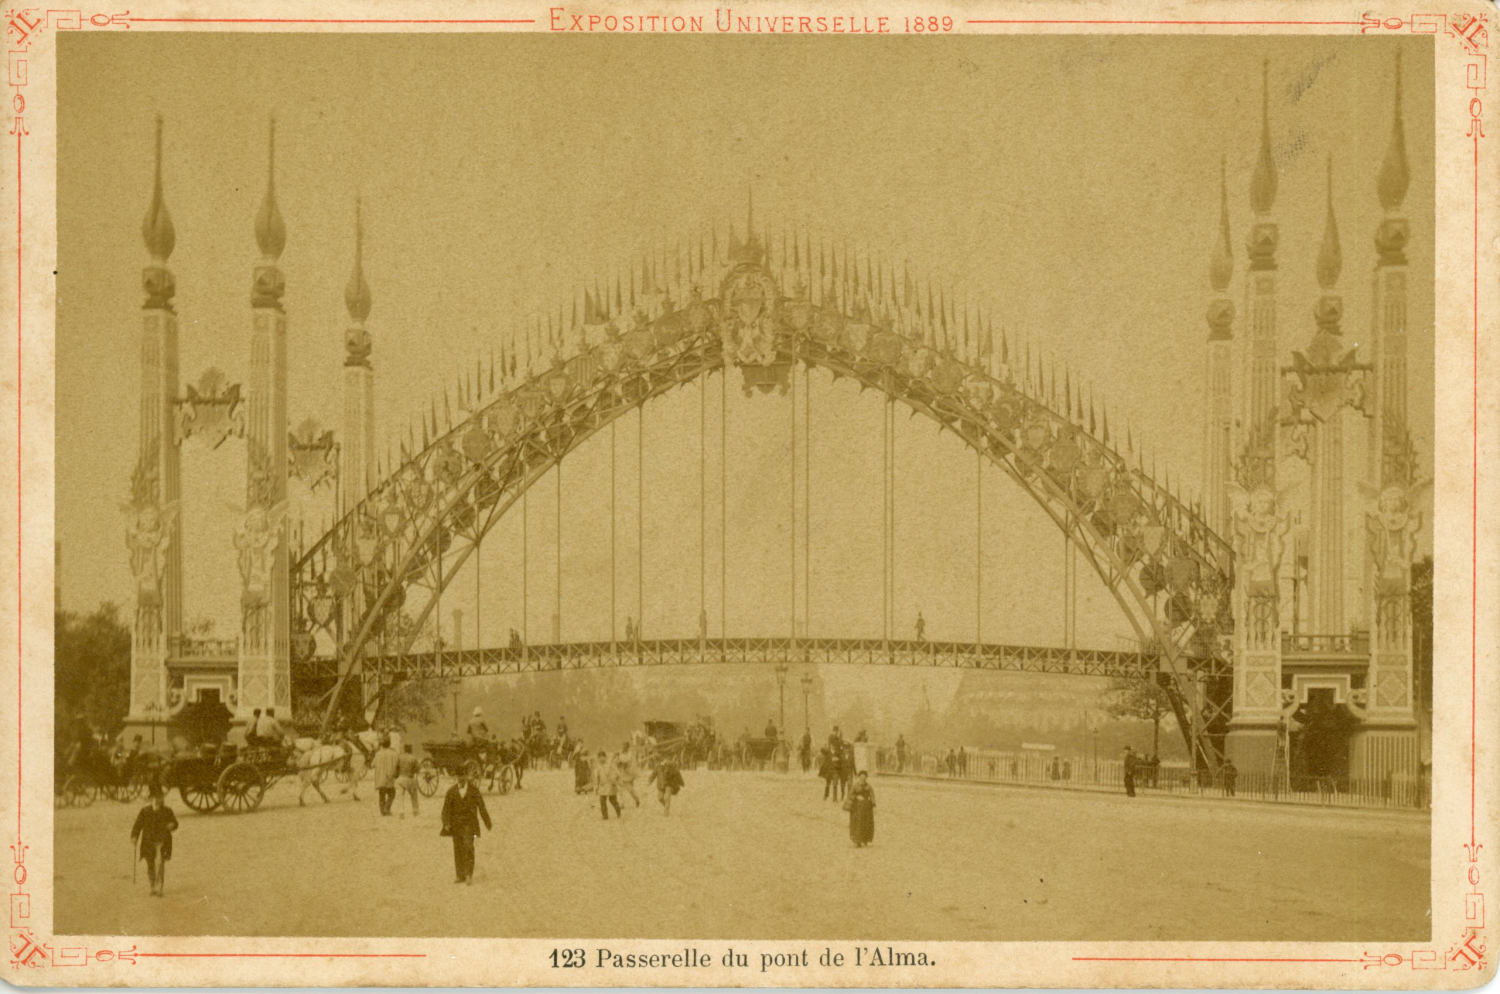 france  paris  exposition universelle de 1889  passerelle